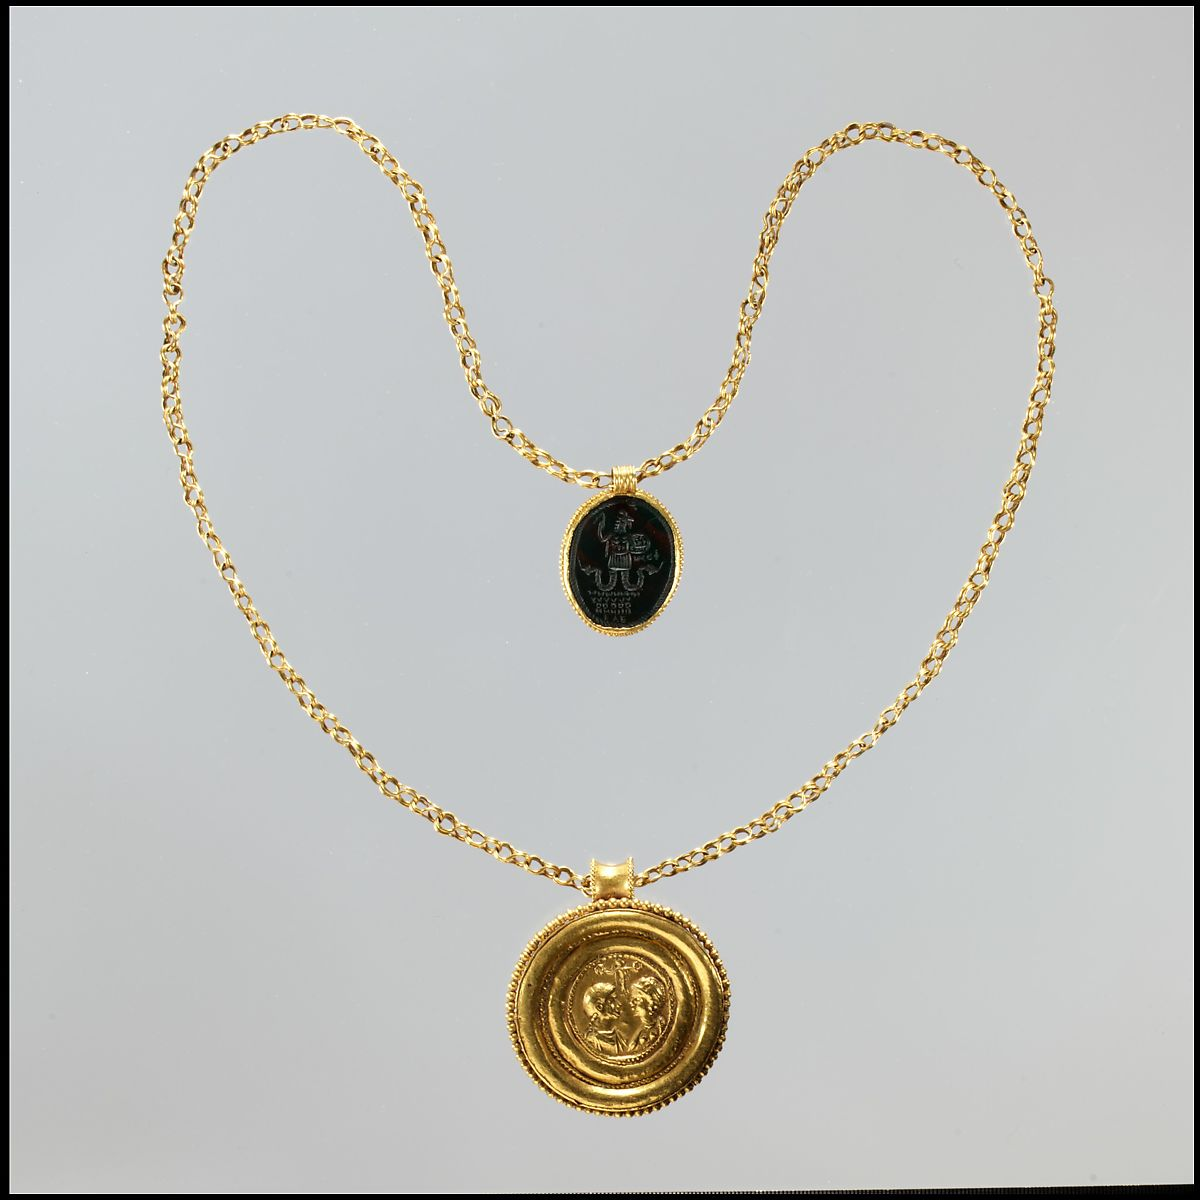 Necklace with Gold Marriage Medallion and Hematite Amulet, Gold, hematite, Byzantine